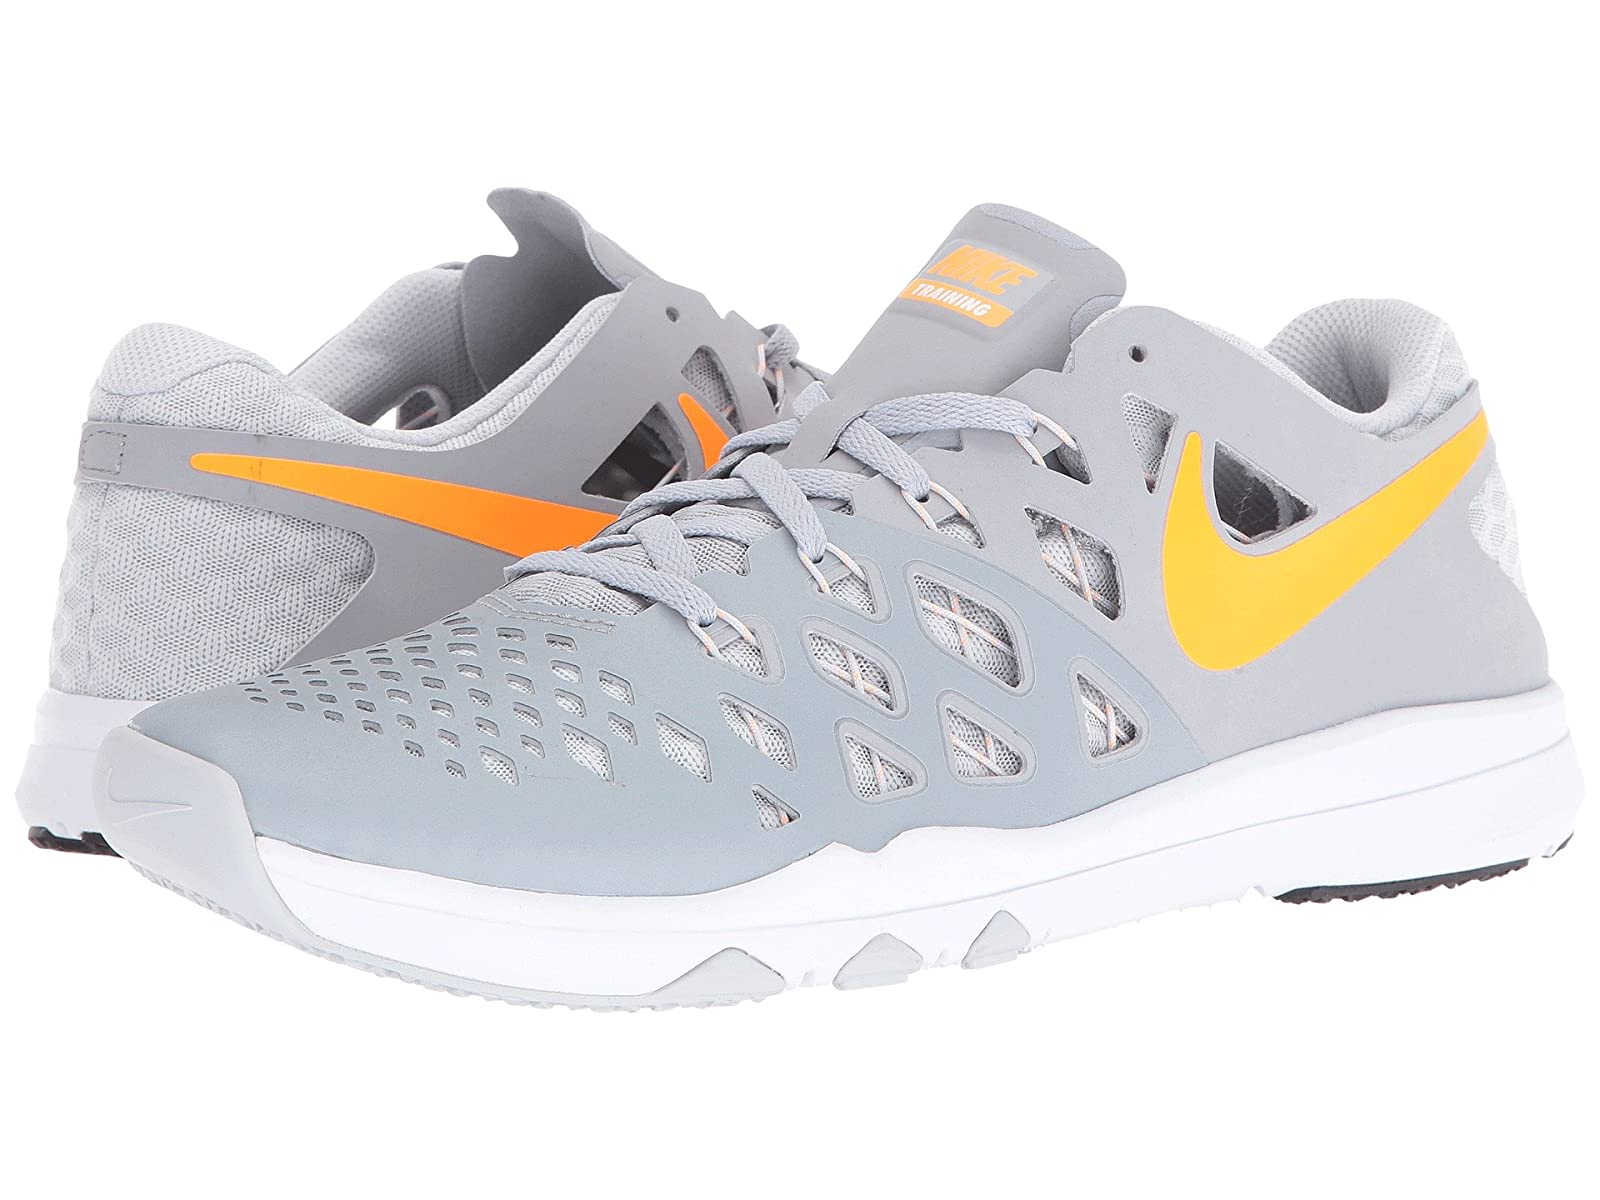 Nike Train Speed 4Cheap and distinctive eye-catching shoes